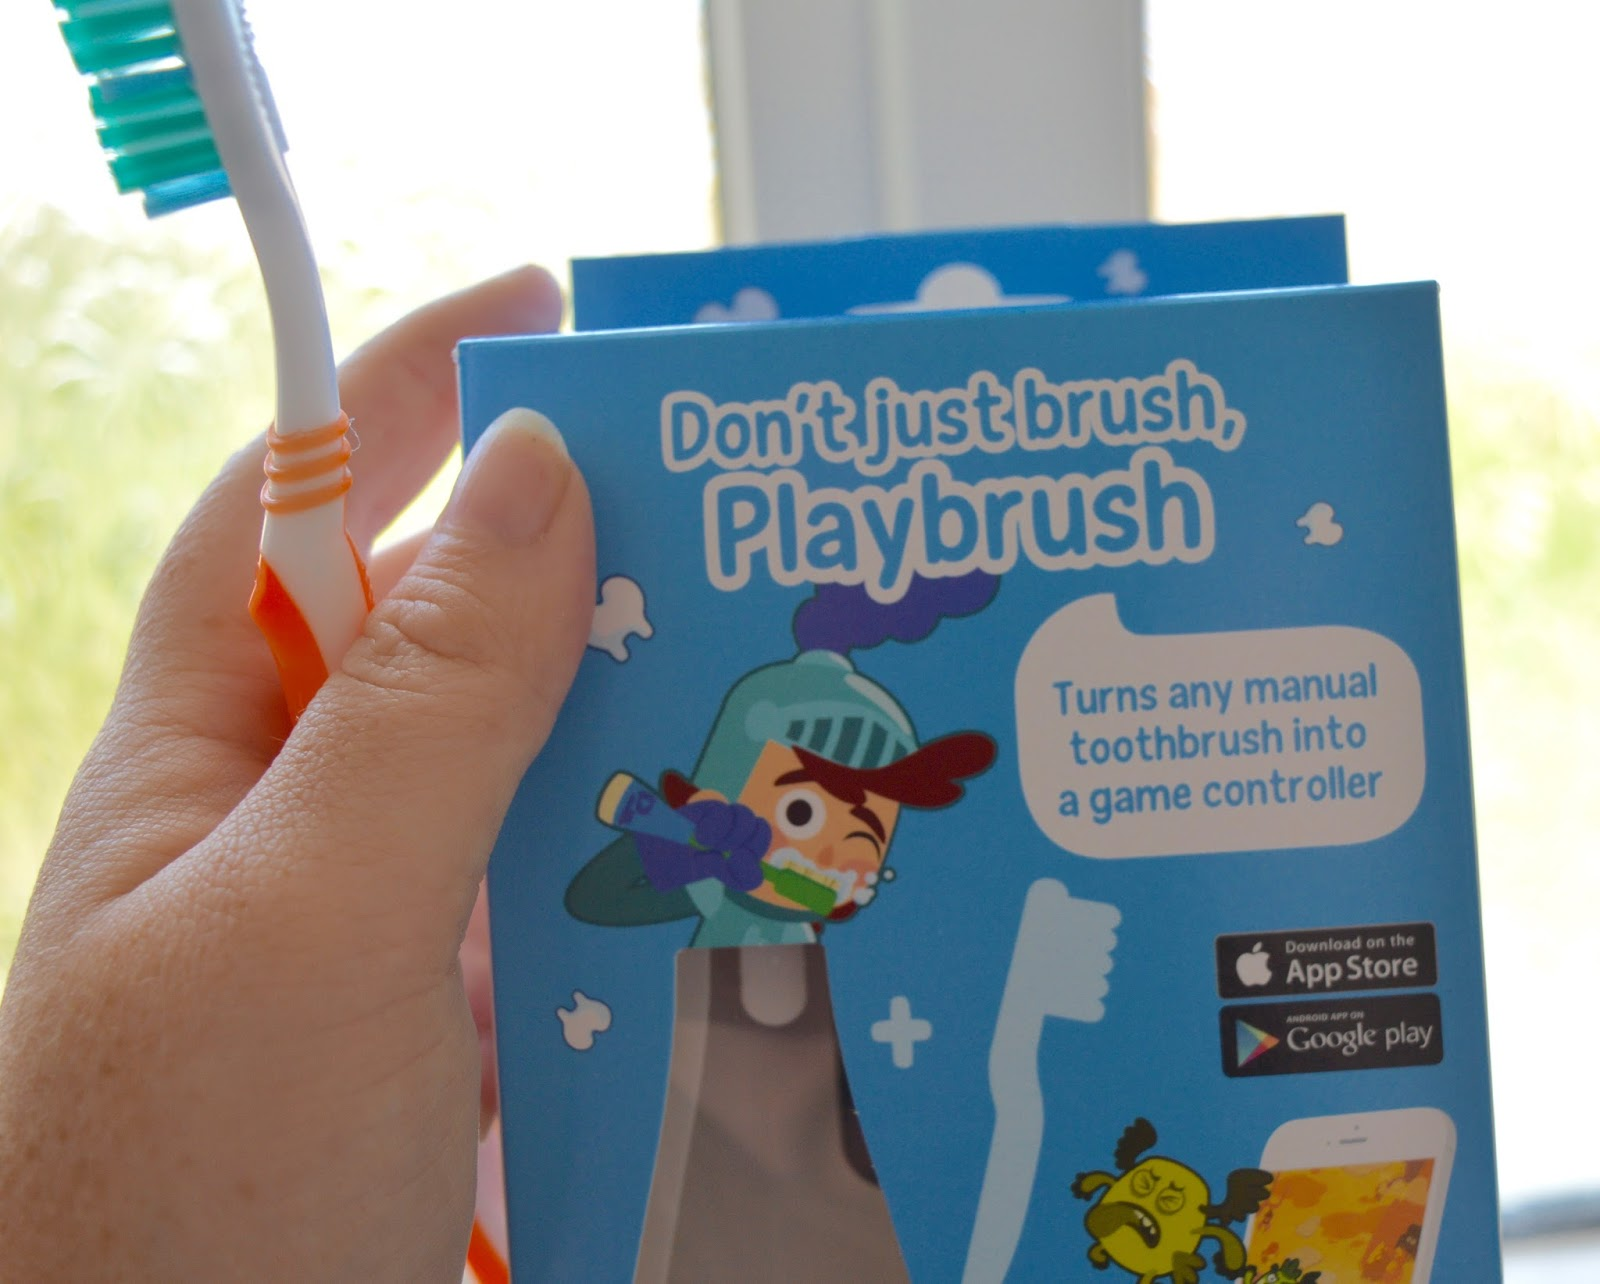 Don't just brush, Playbrush review | Turn your child's toothbrush into a fun game